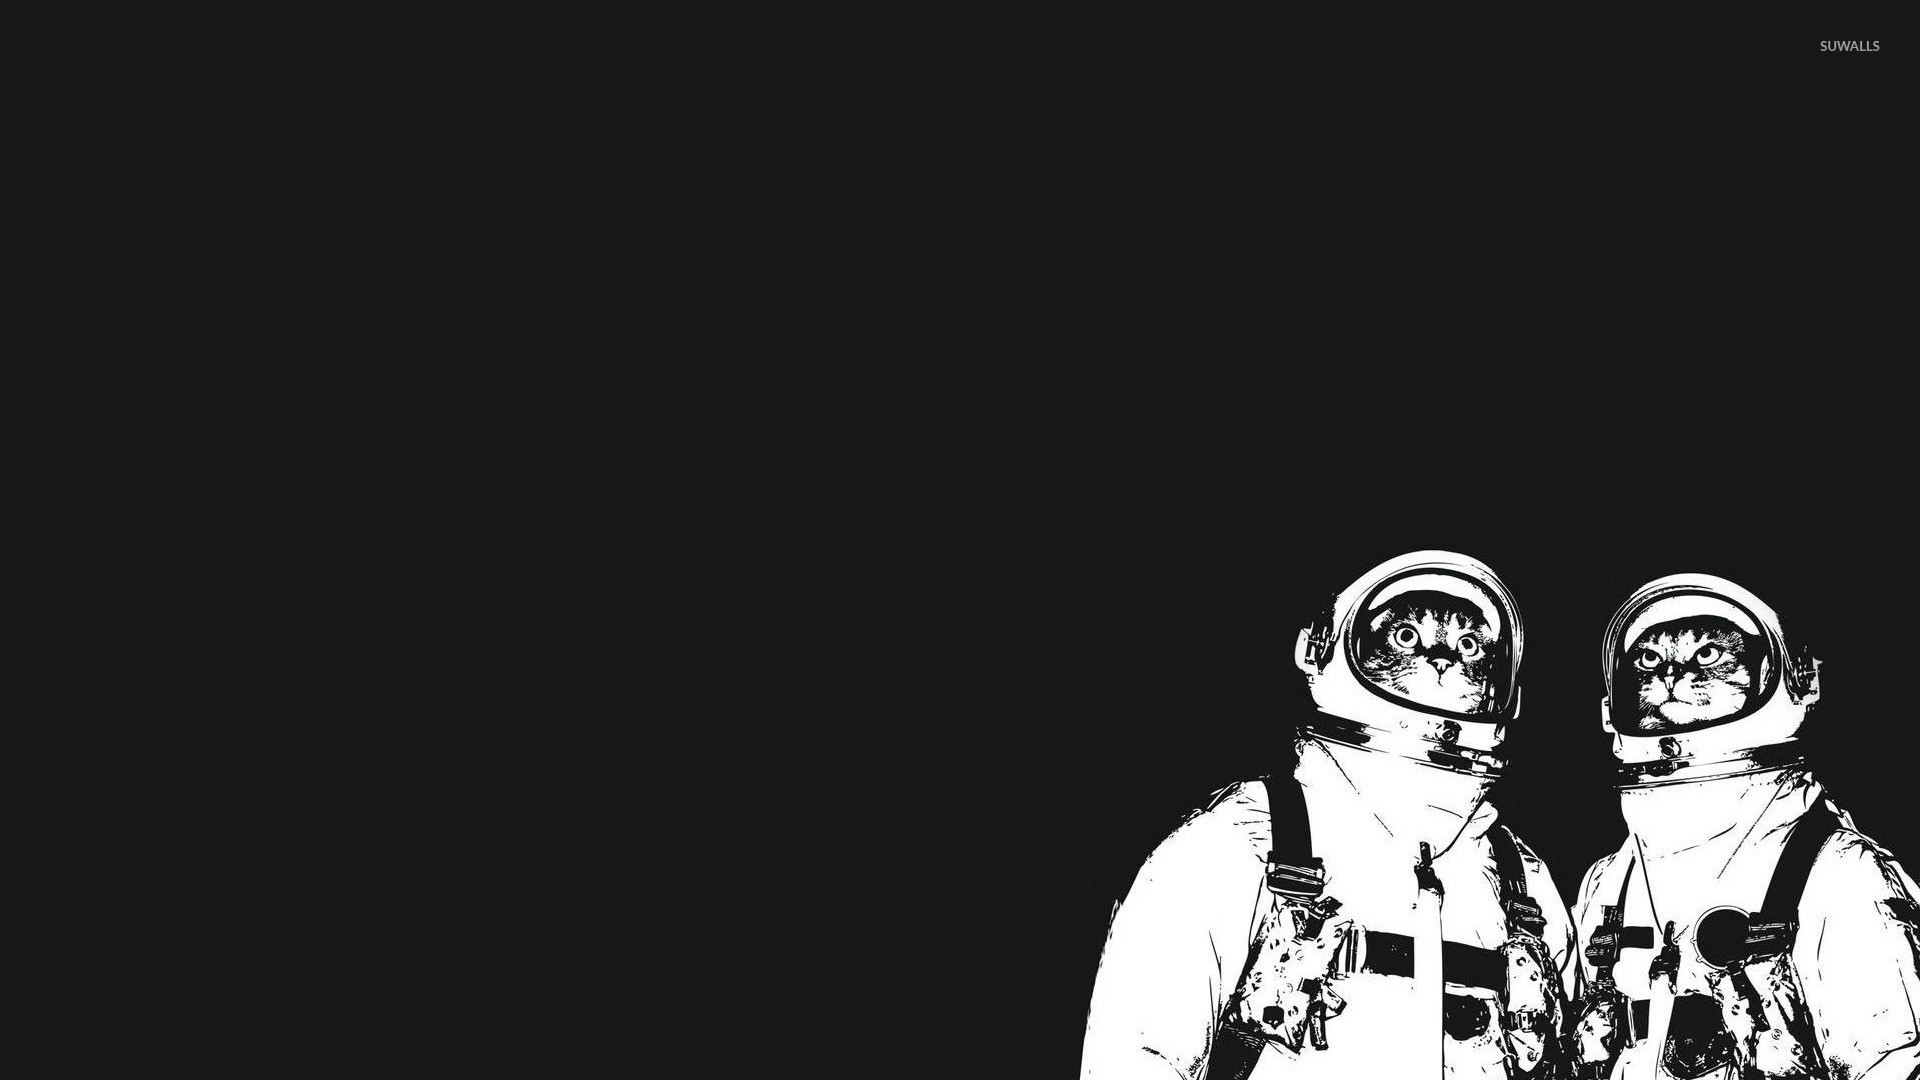 1920x1080 1080x1920 Iphone Wallpaper Abstract Portrait Astronaut Mobile Desktop Hd Of  The Week